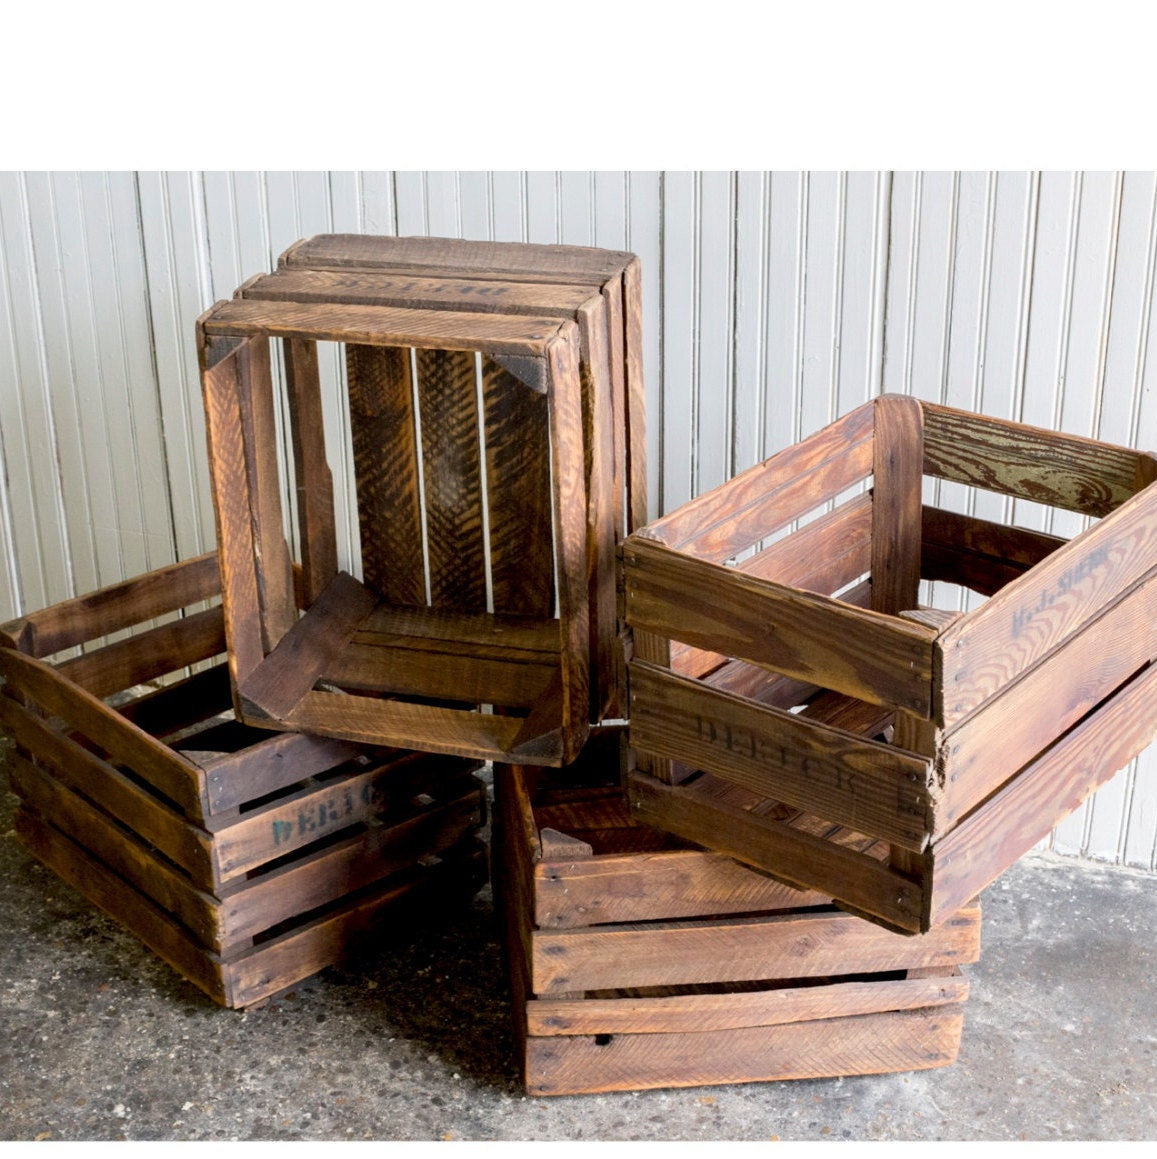 Wood crates vintage wooden fruit crates by brooklynreclamation for Wooden fruit crates